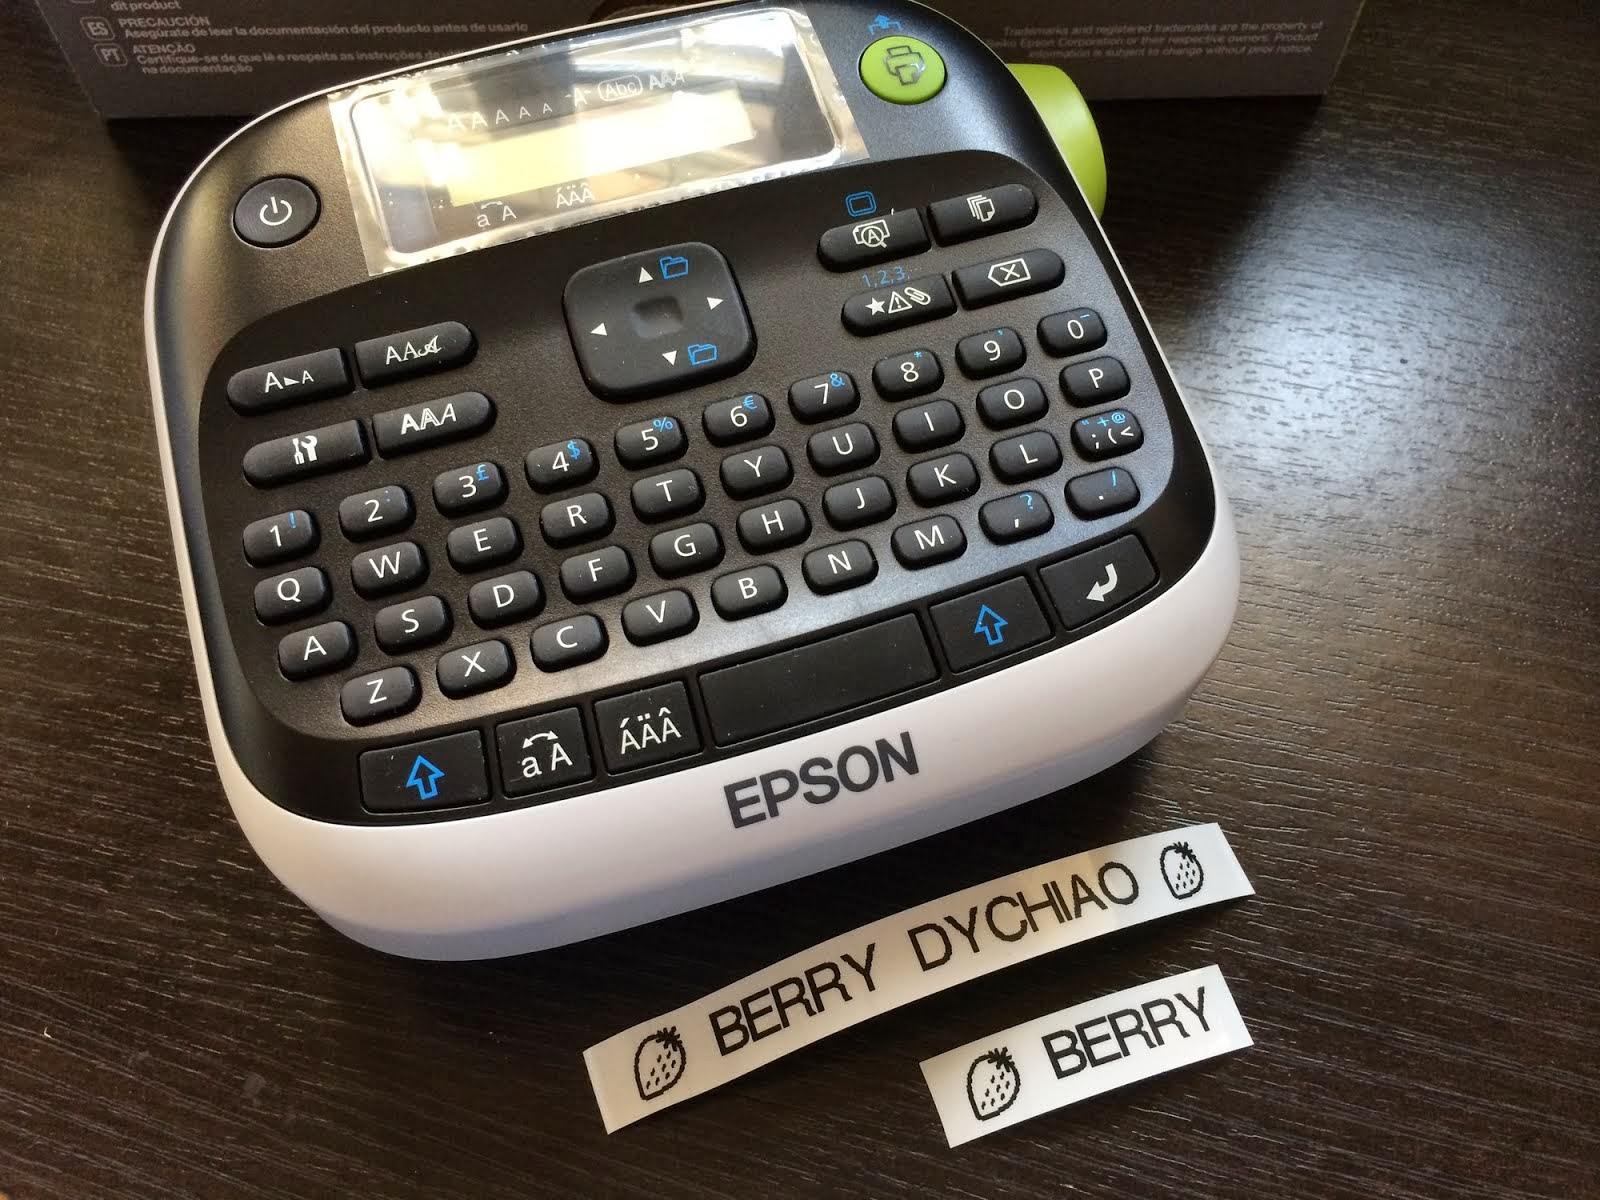 LET'S MAKE THIS EPSON GIVEAWAY HAPPEN!